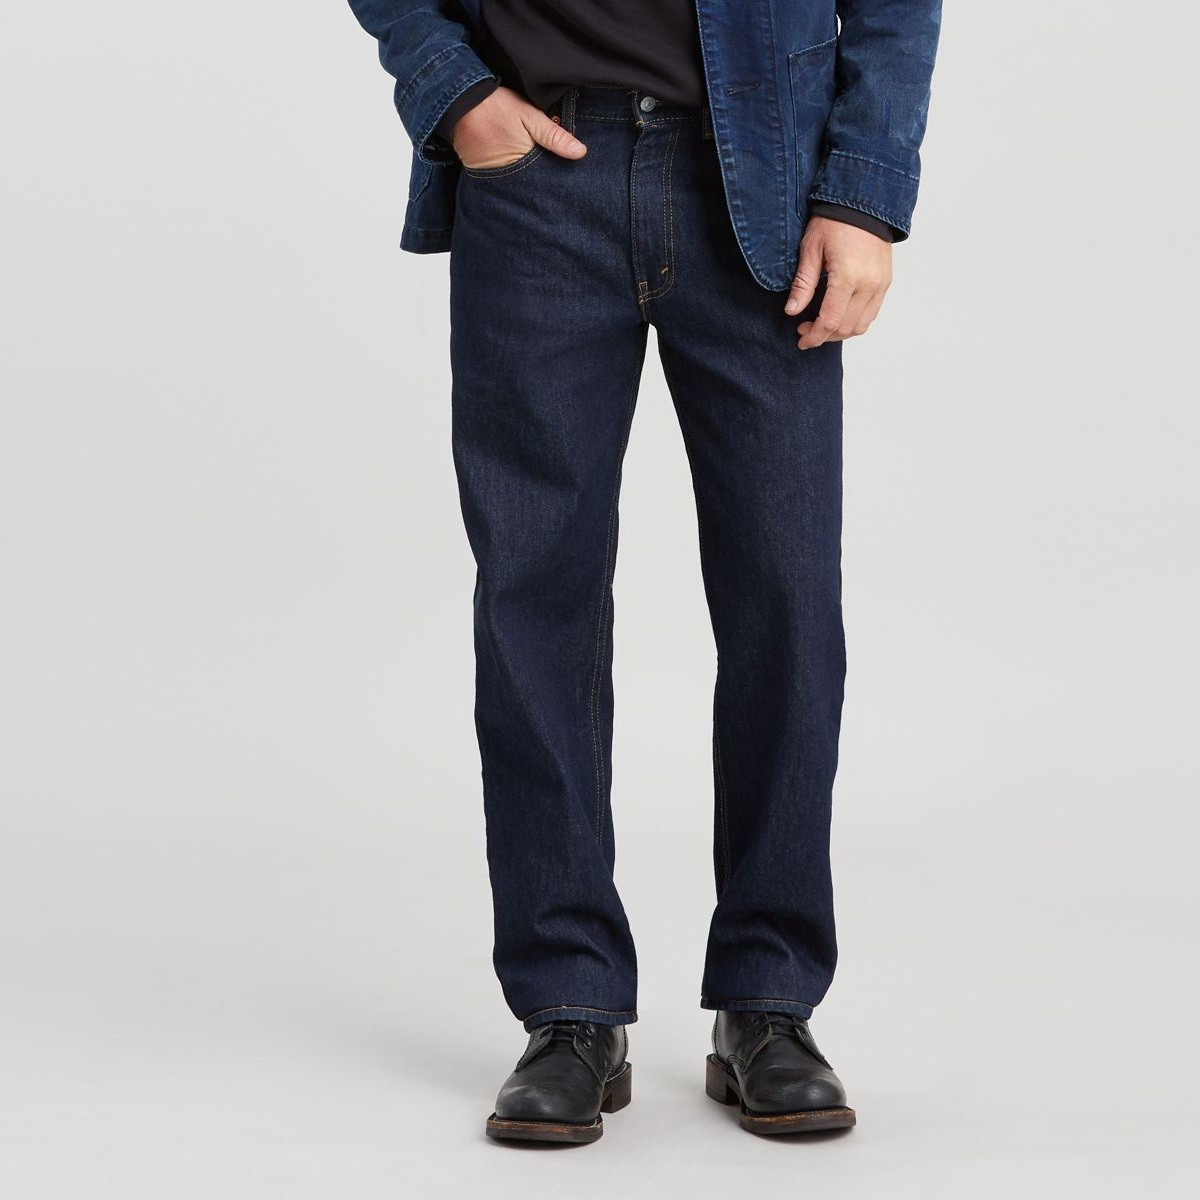 550 Relaxed Fit Jeans 00550-0216 1